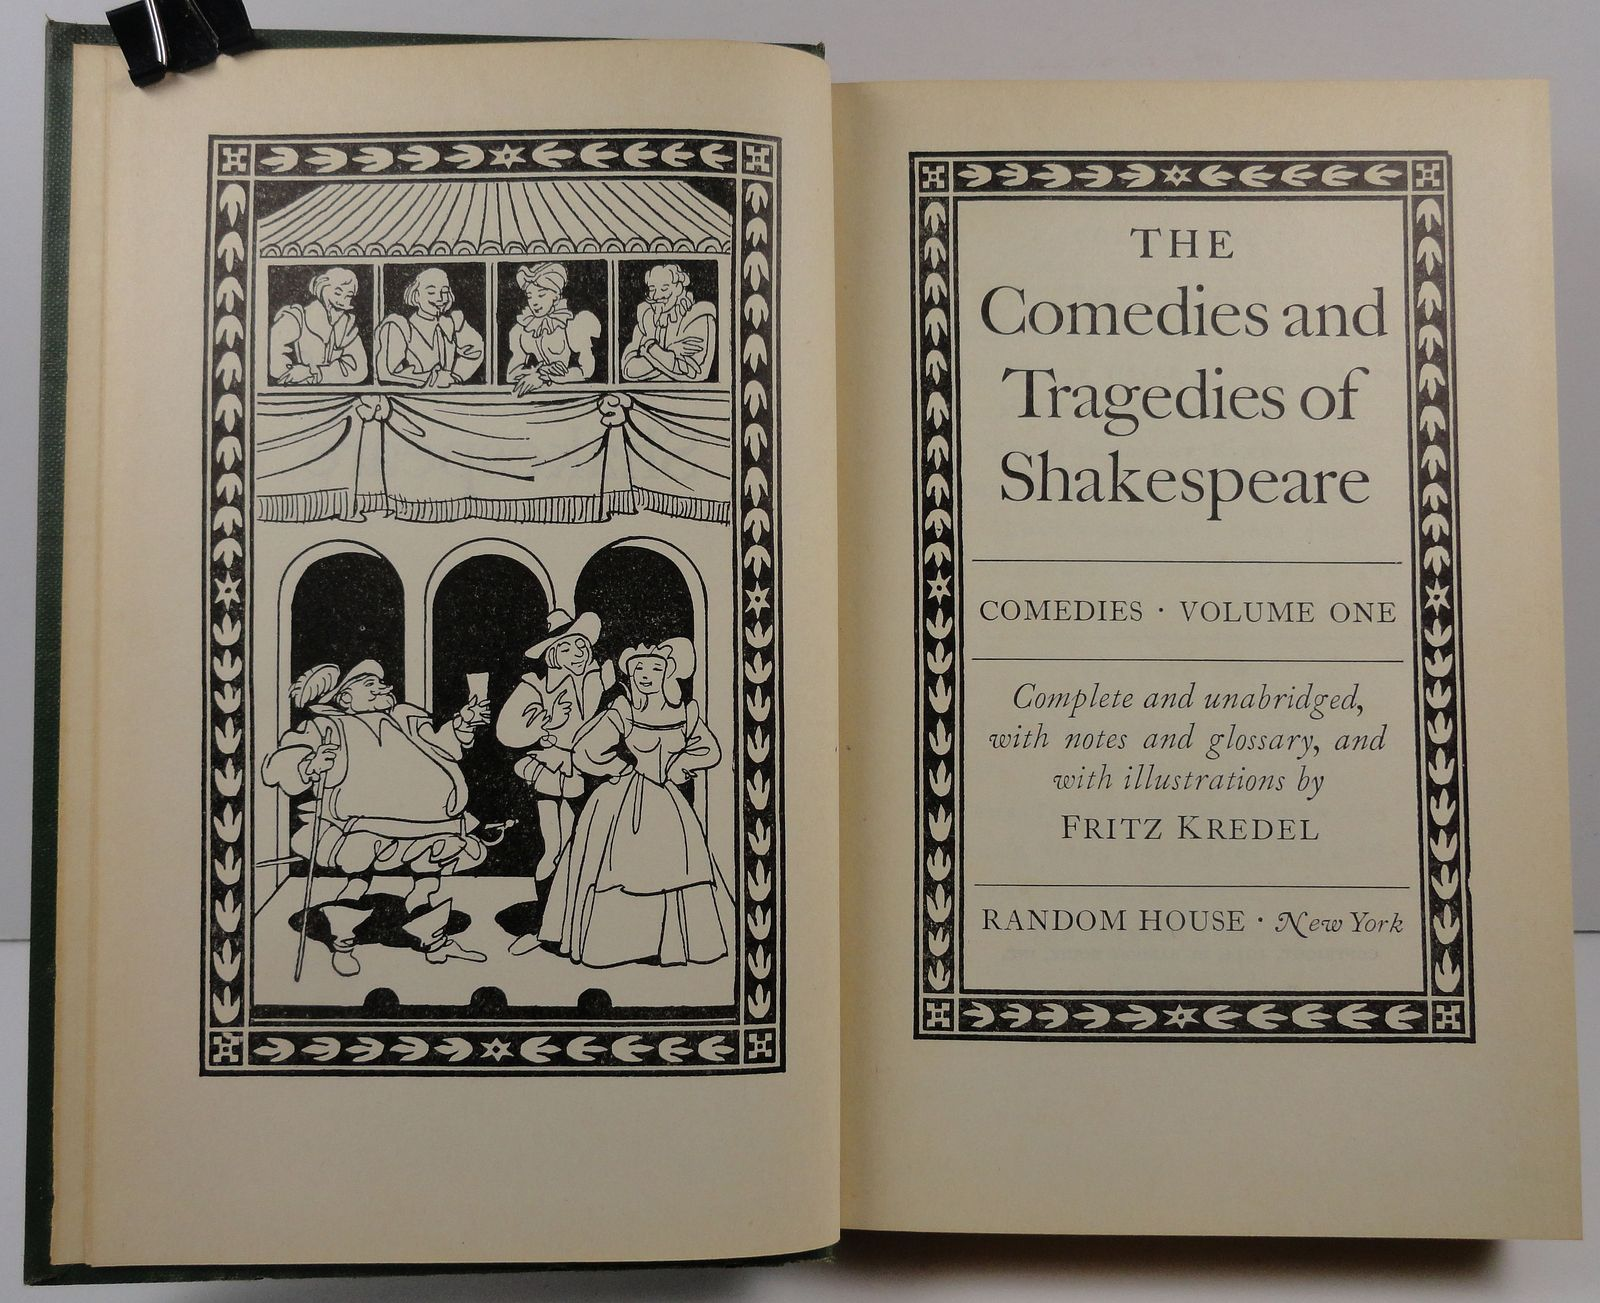 The Comedies and Tragedies of William Shakespeare Vol. 1 and 2 1944